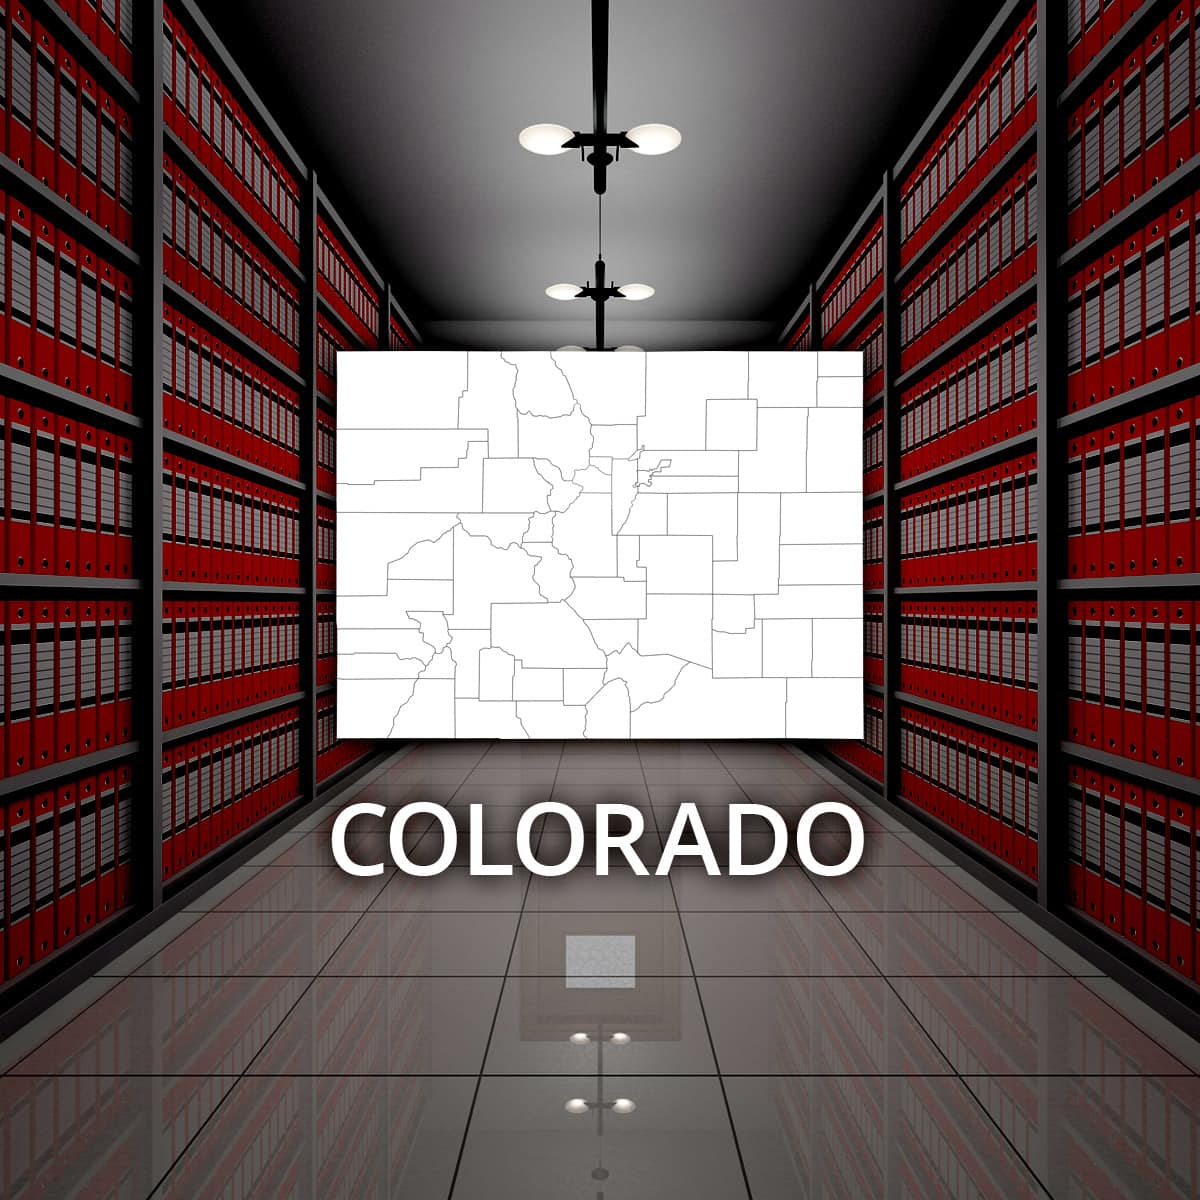 Colorado Unclaimed Property: Colorado Public Records